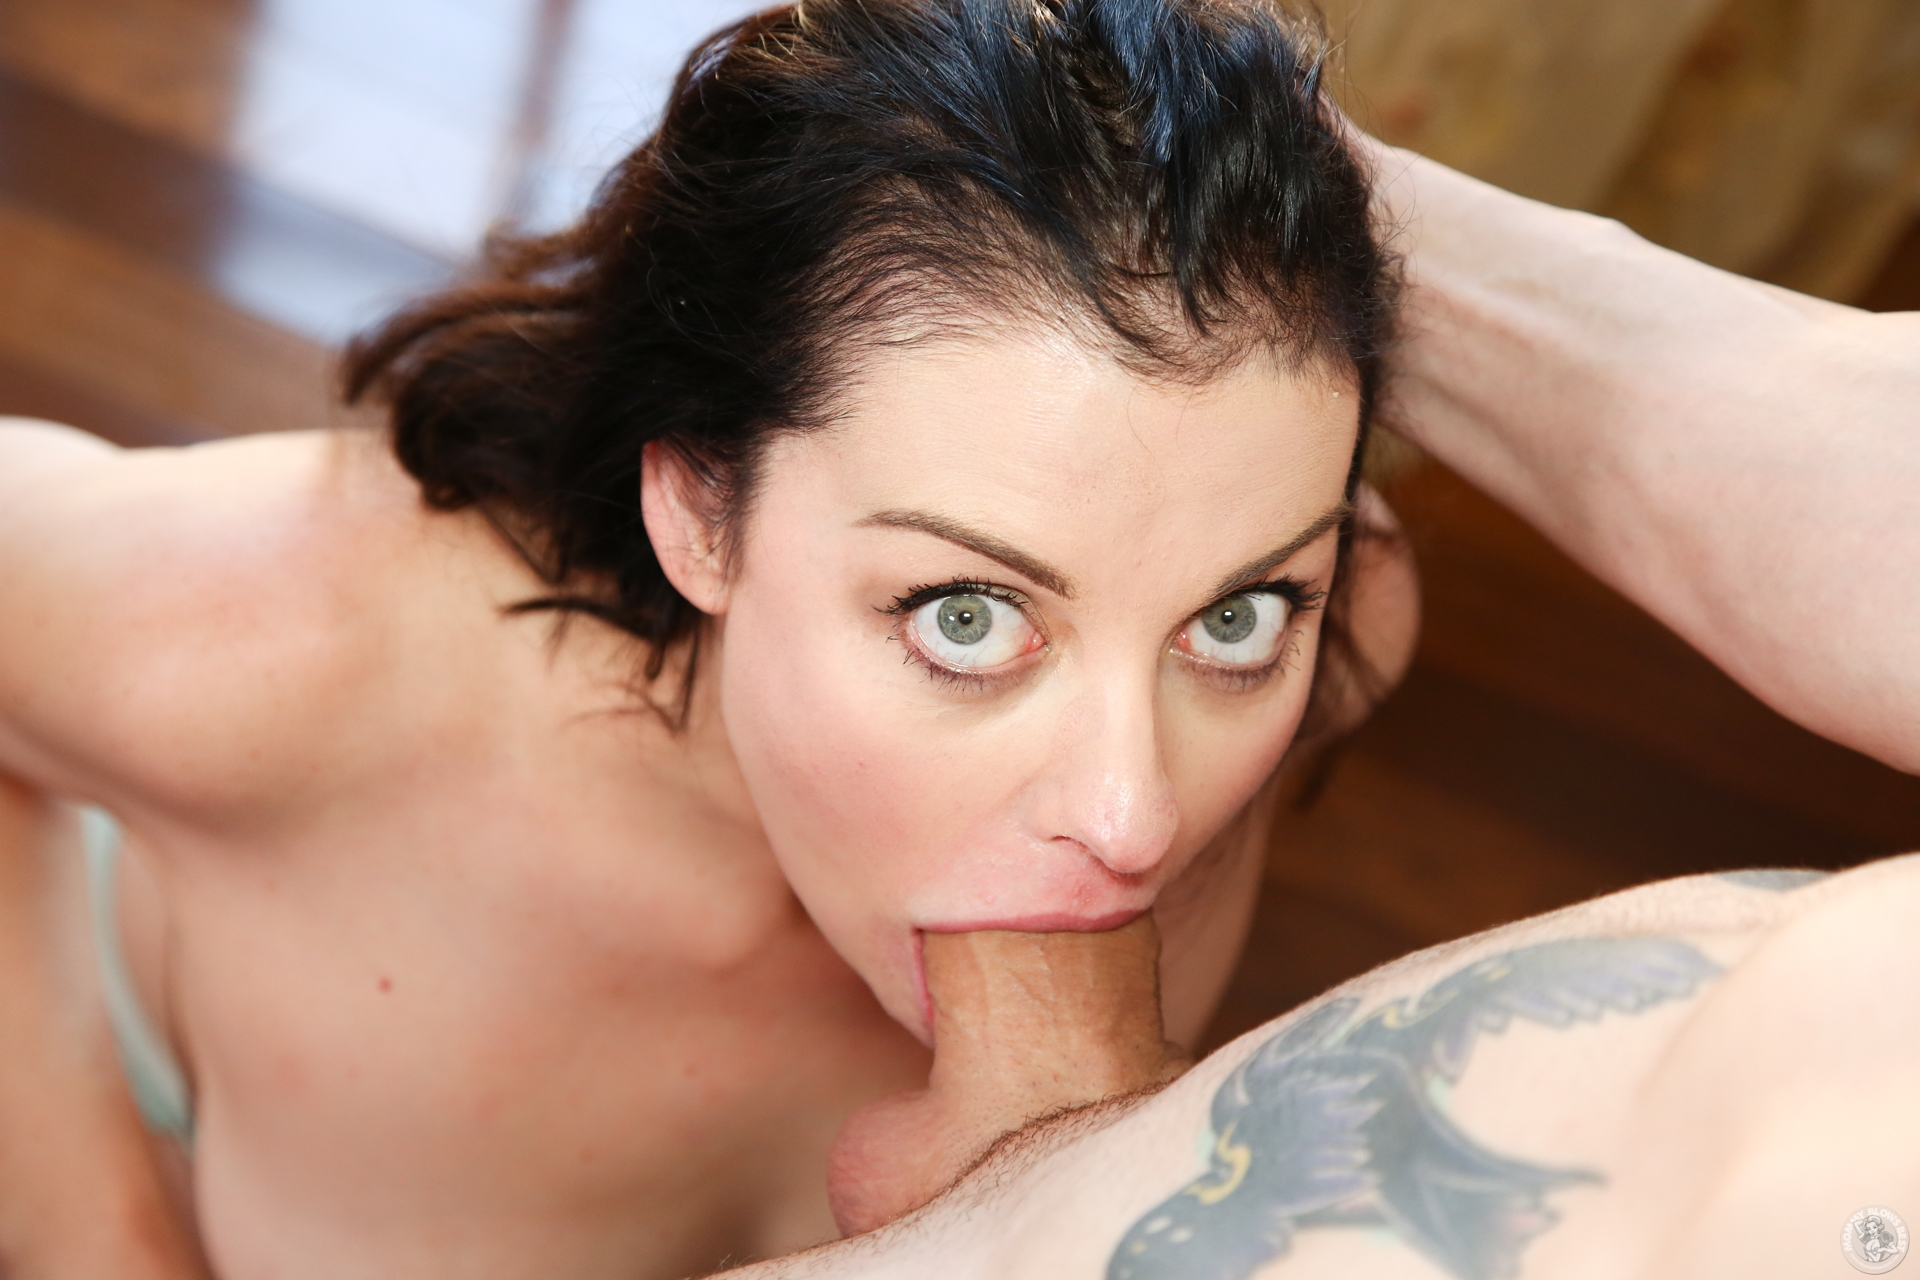 free porn samples of my xxx pass - best deep throat oral sex site